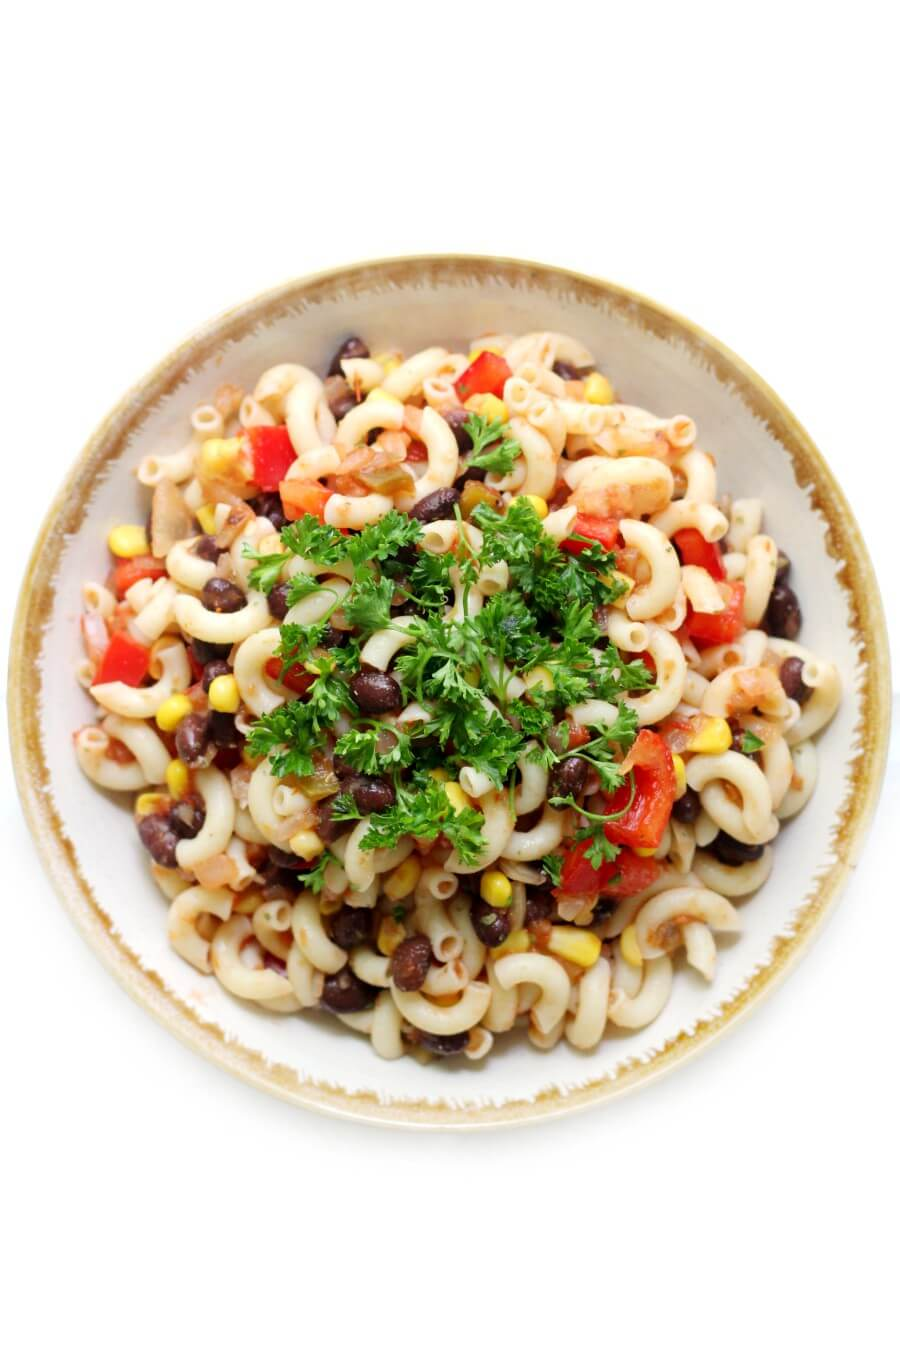 large bowl of easy gluten-free Mexican pasta salad